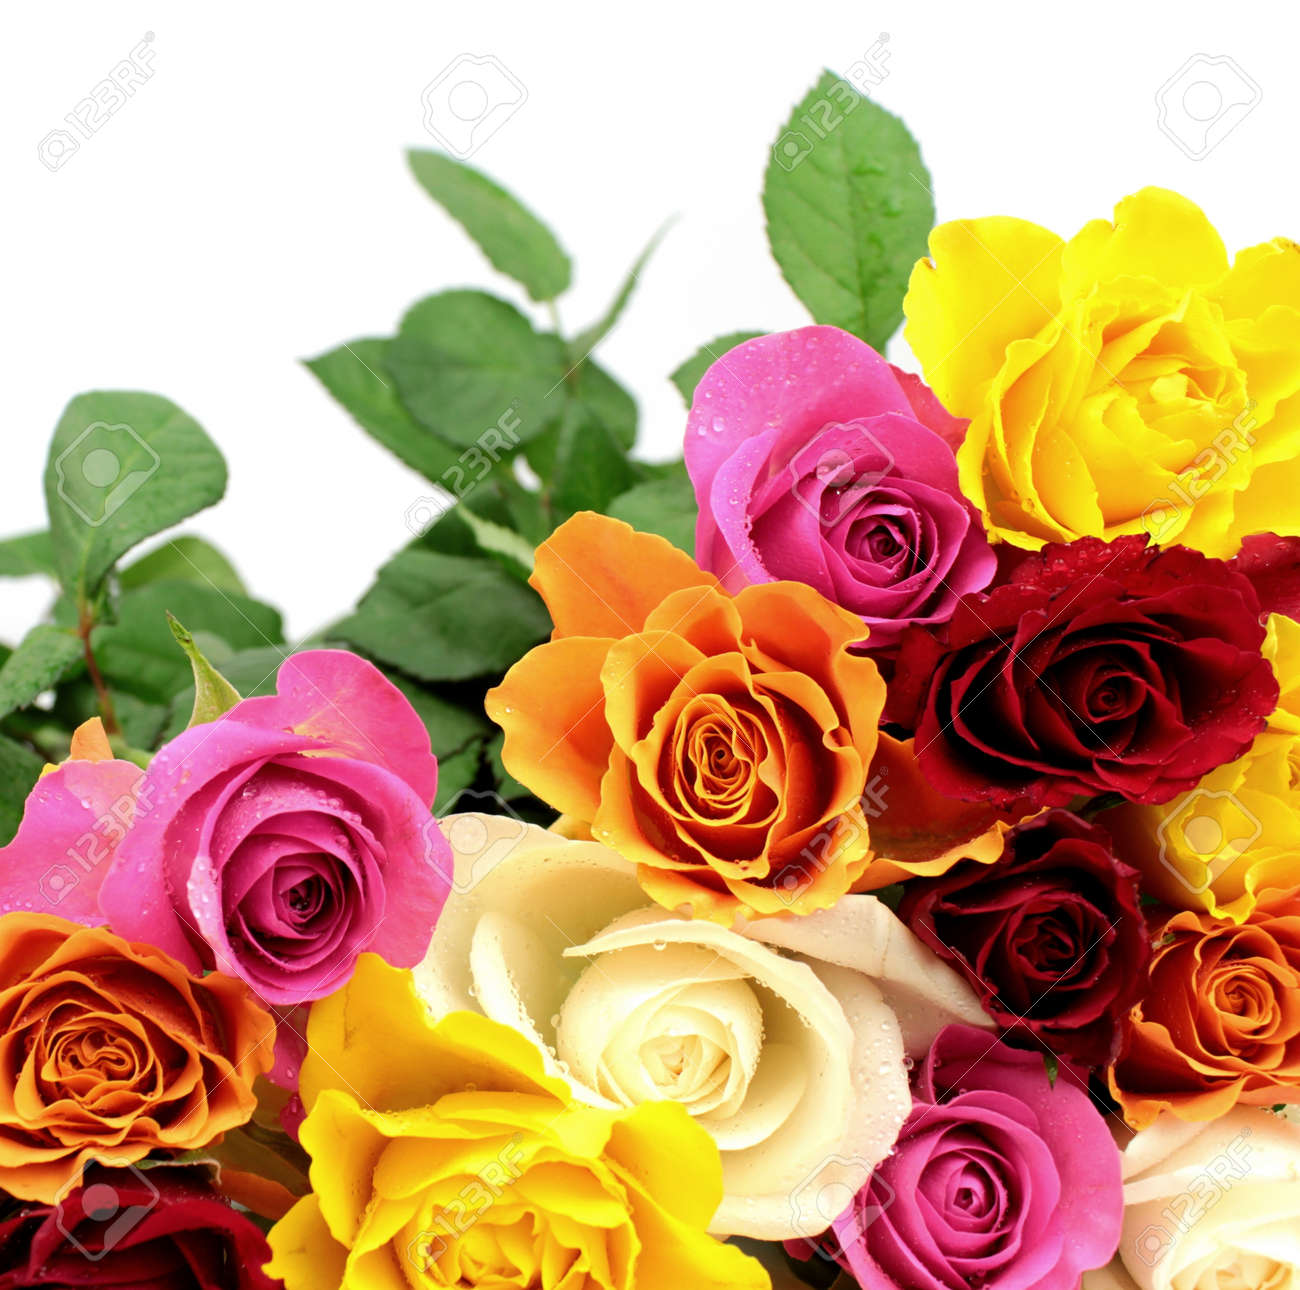 Colorful roses Stock Photo - 14192151